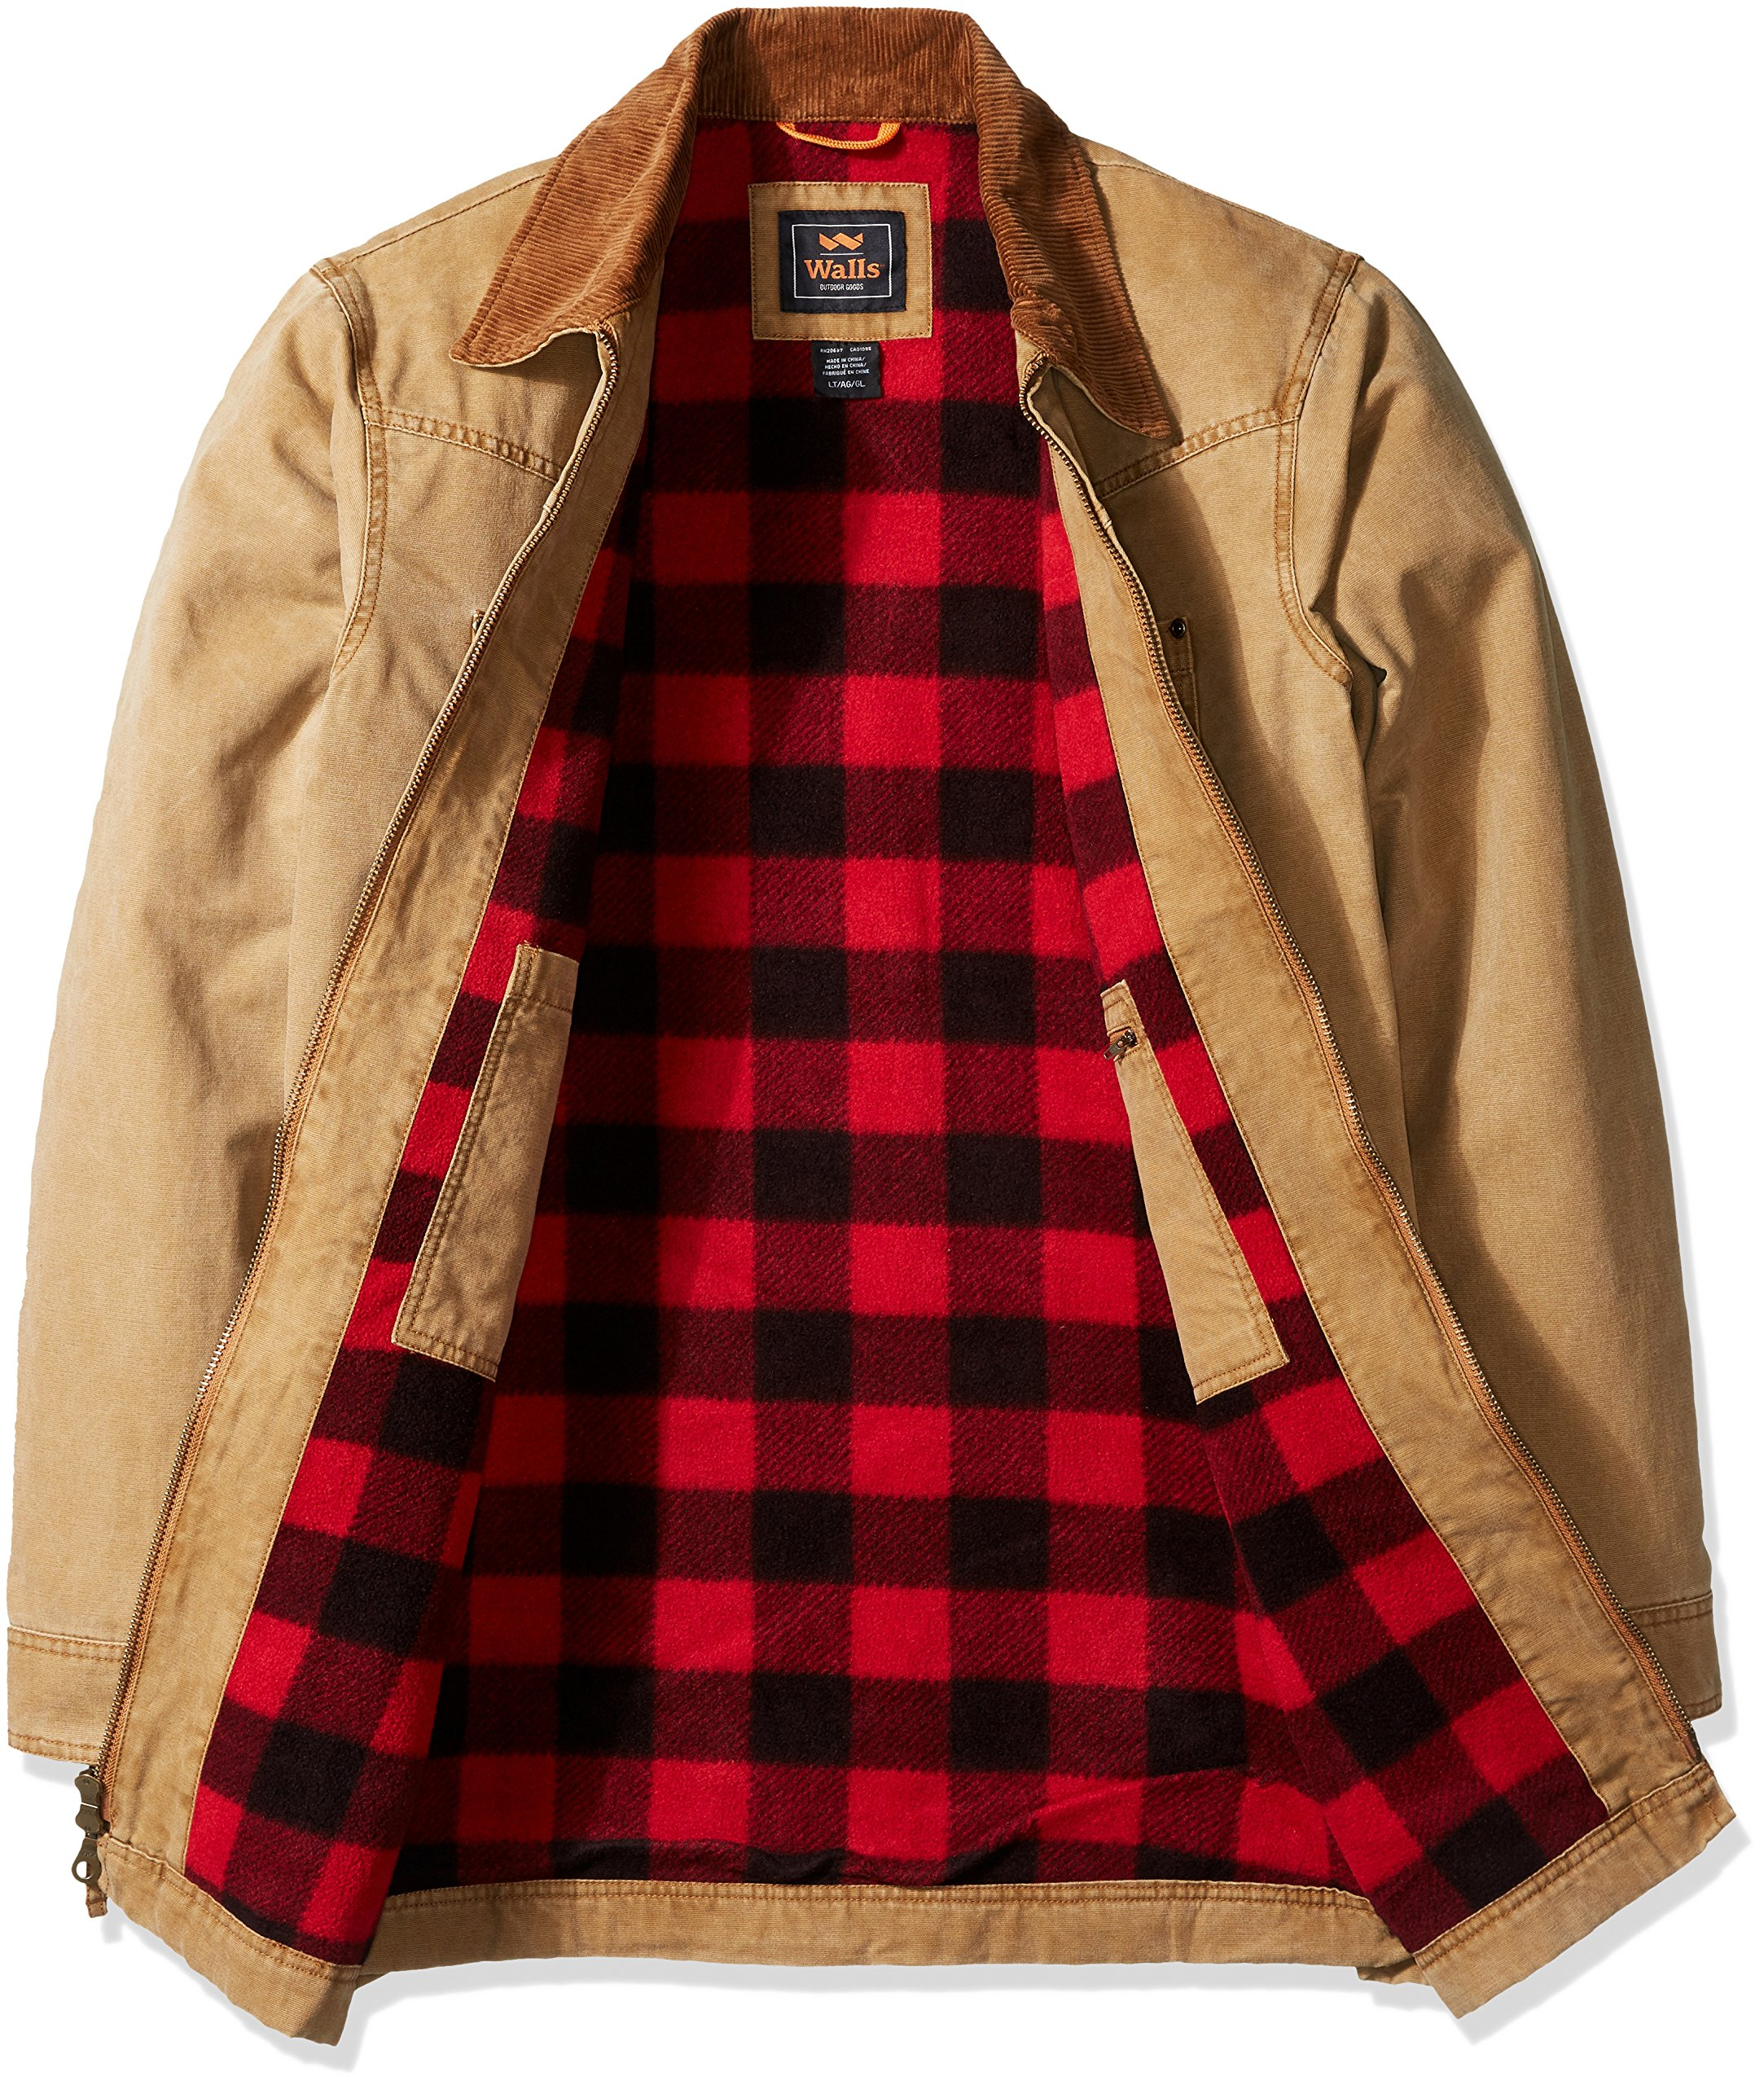 Walls Men's Big Redford Vintage Duck Barn Coat, Washed Pecan, 2X Tall by Walls (Image #3)